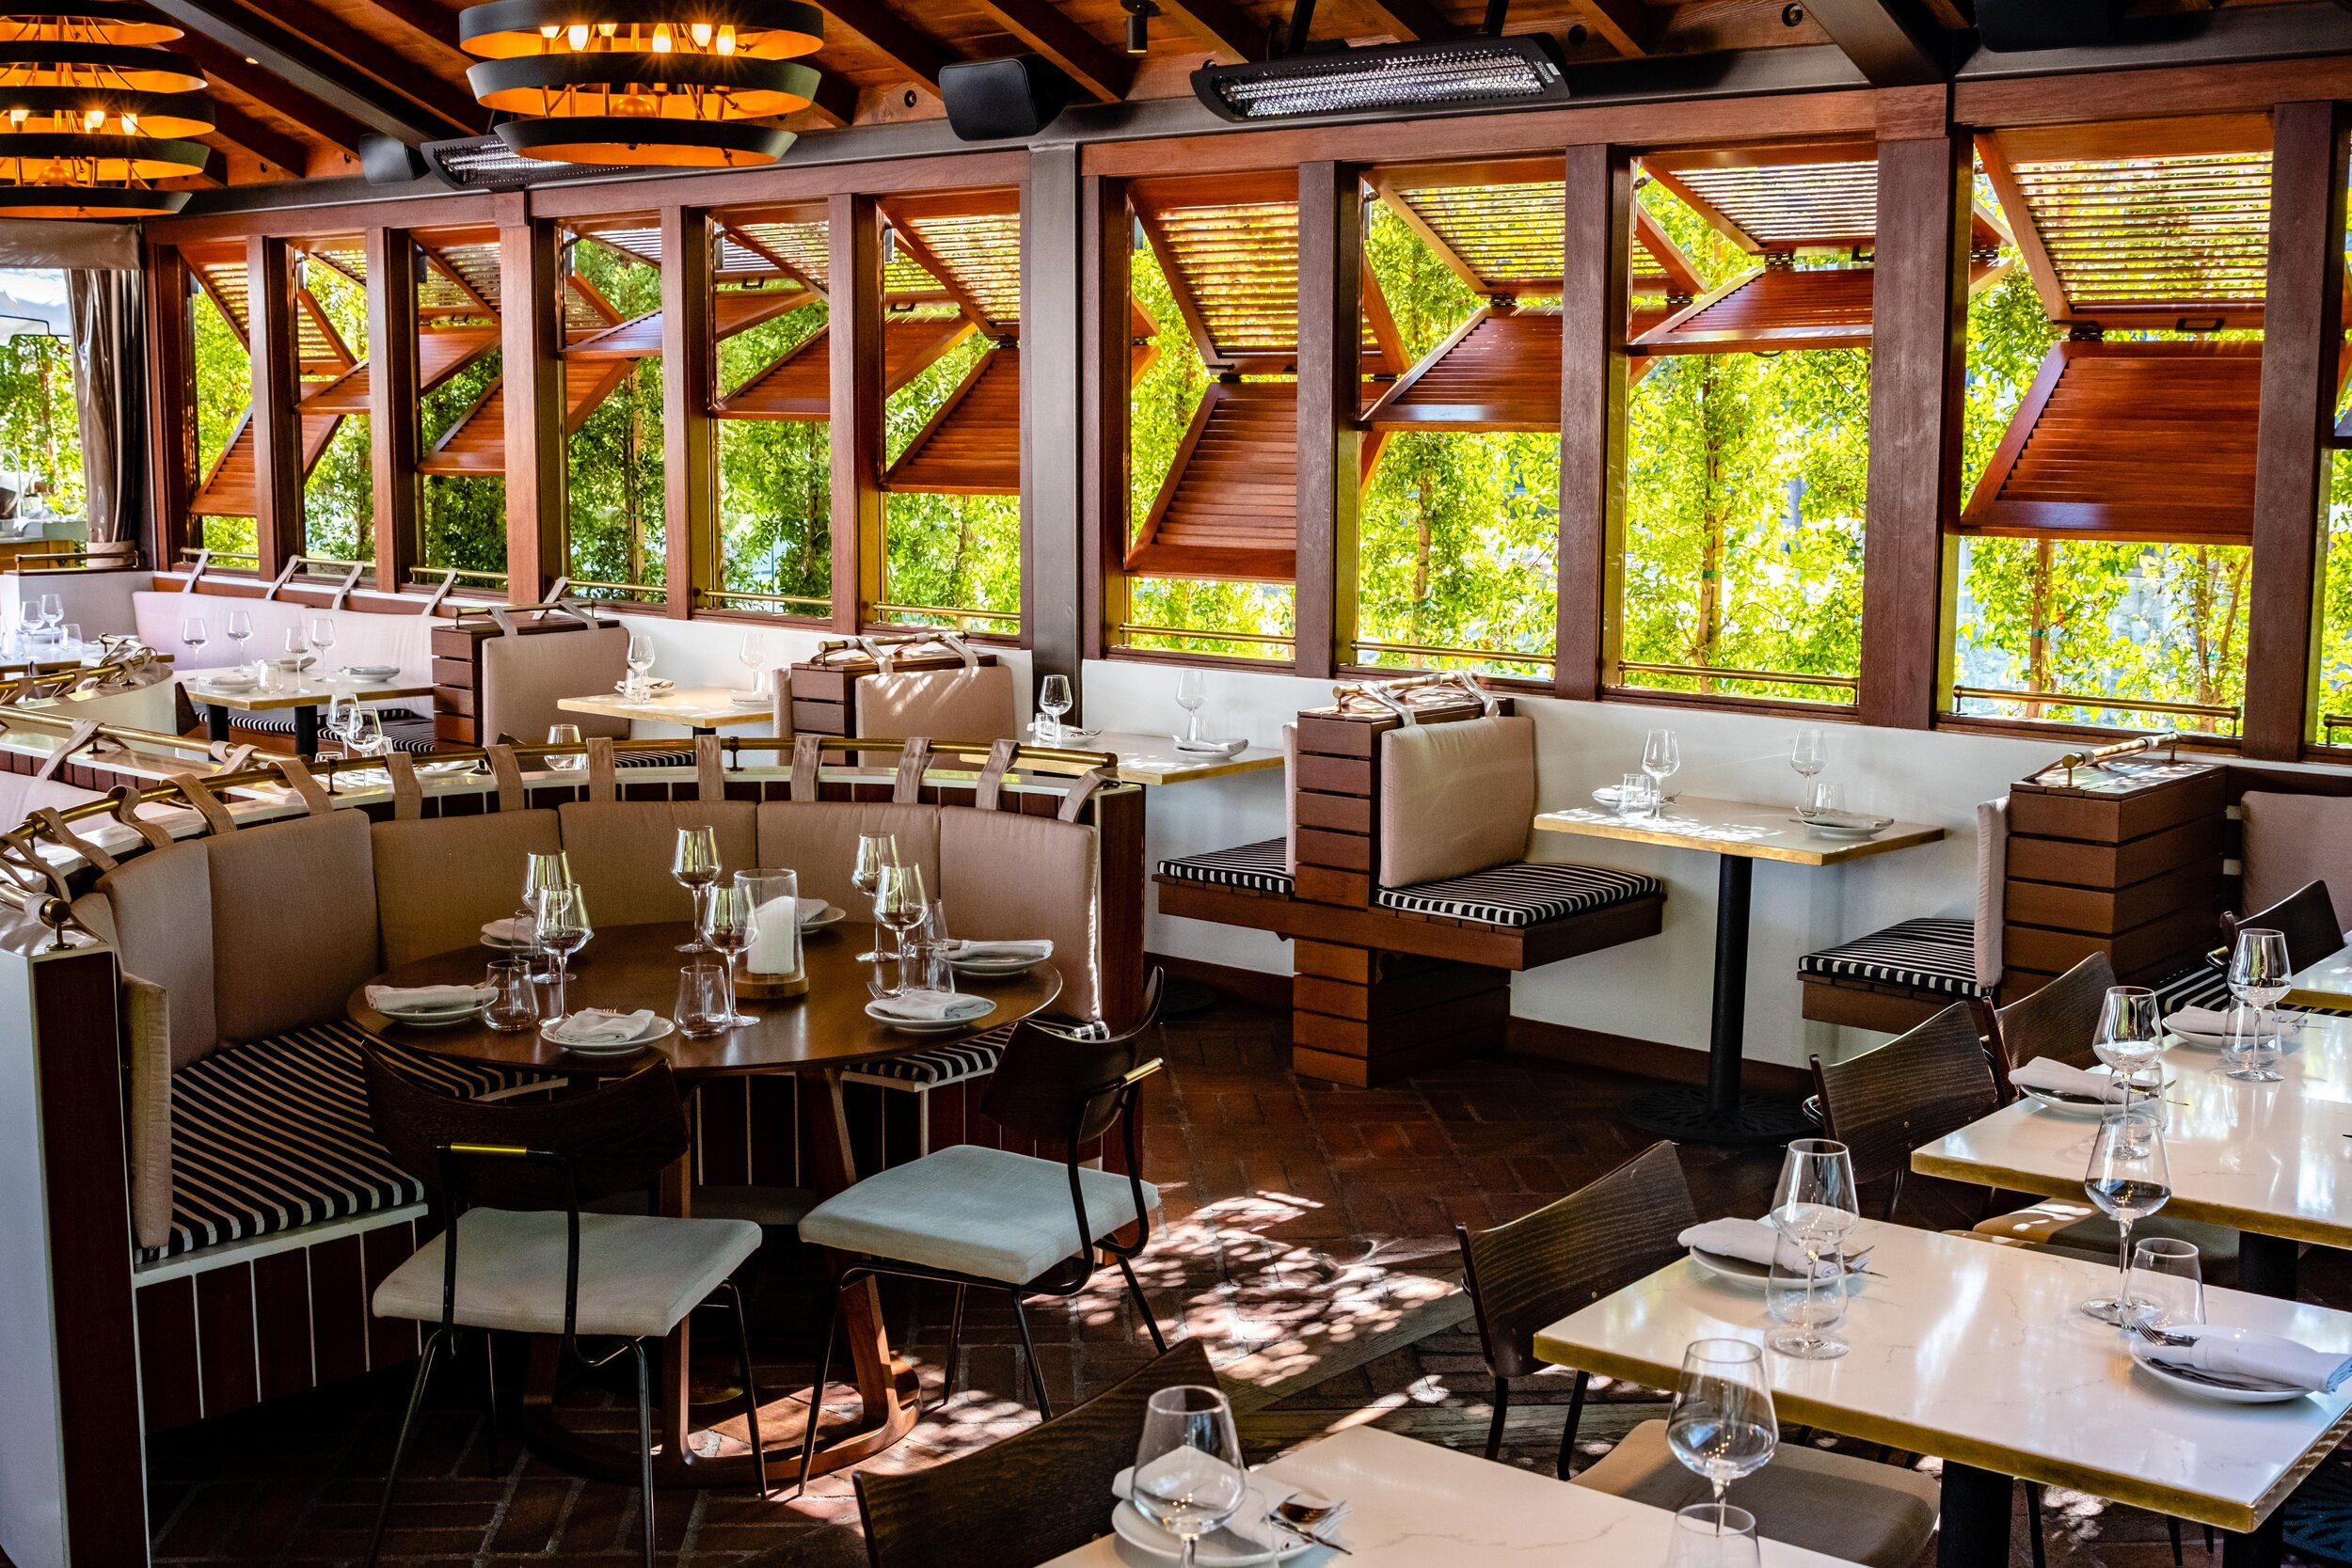 The main dining room at Conservatory